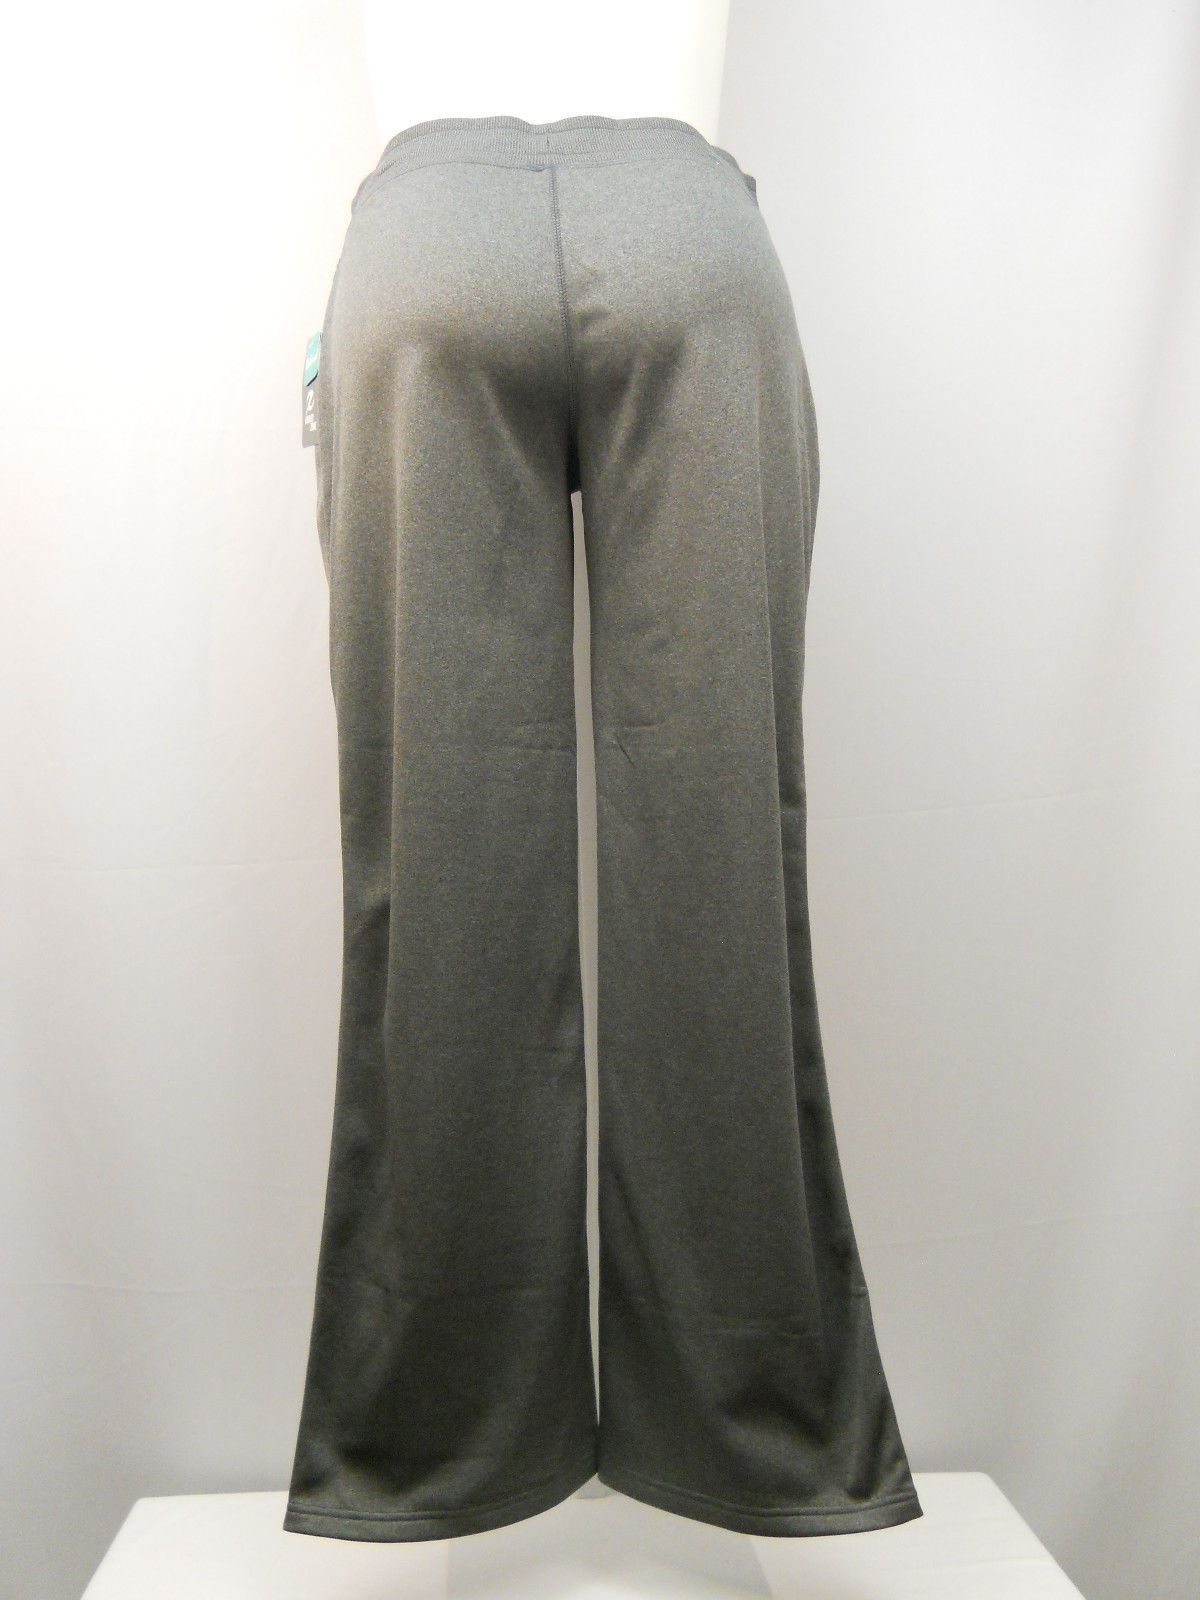 Size L Womens Athletic Yoga Pants Energy Zone Gray Relaxed